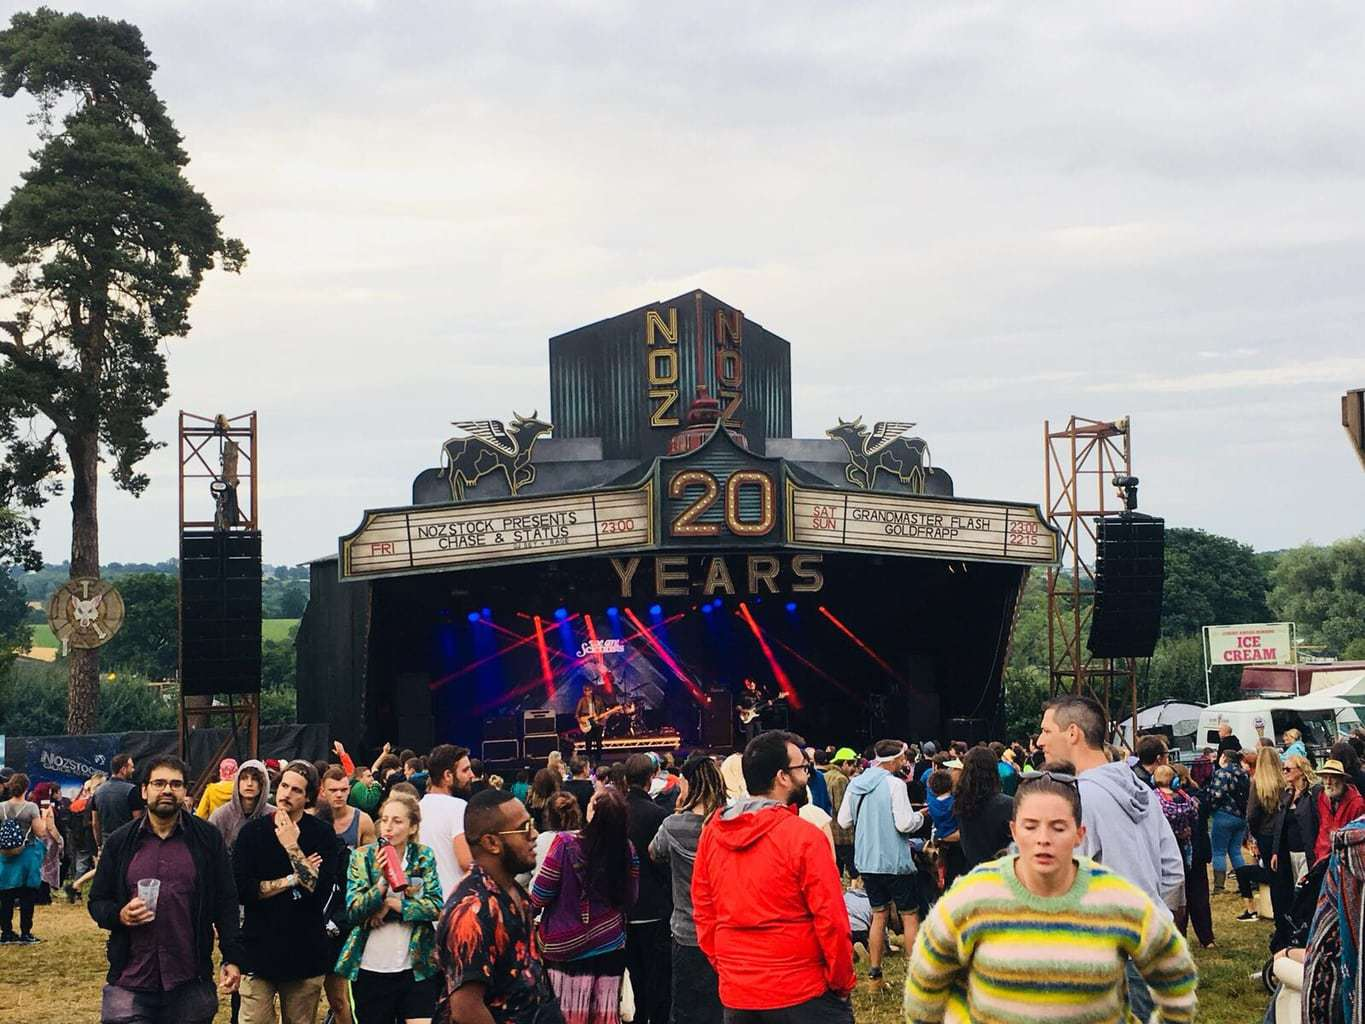 Nozstalgia at Nozstock Festival – still partying hard at 20 Years Young